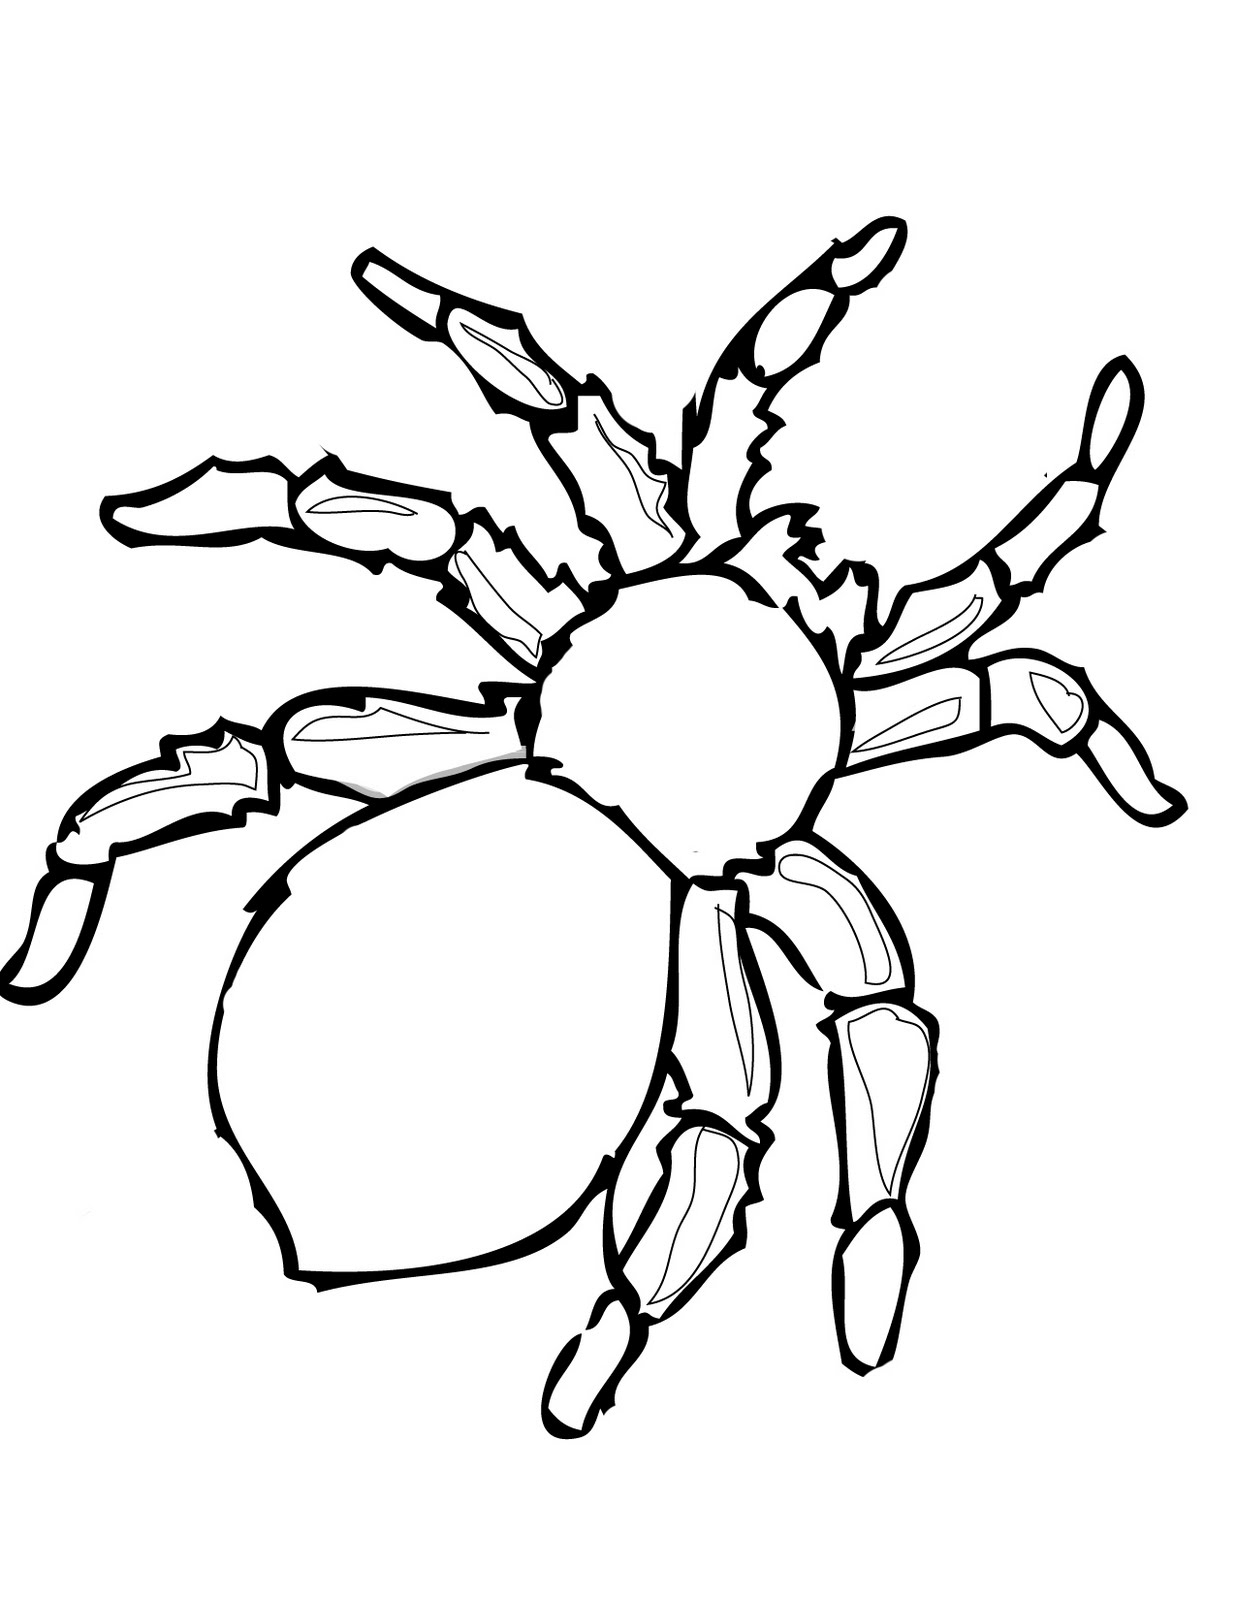 5 Images of Free Printable Spider Template